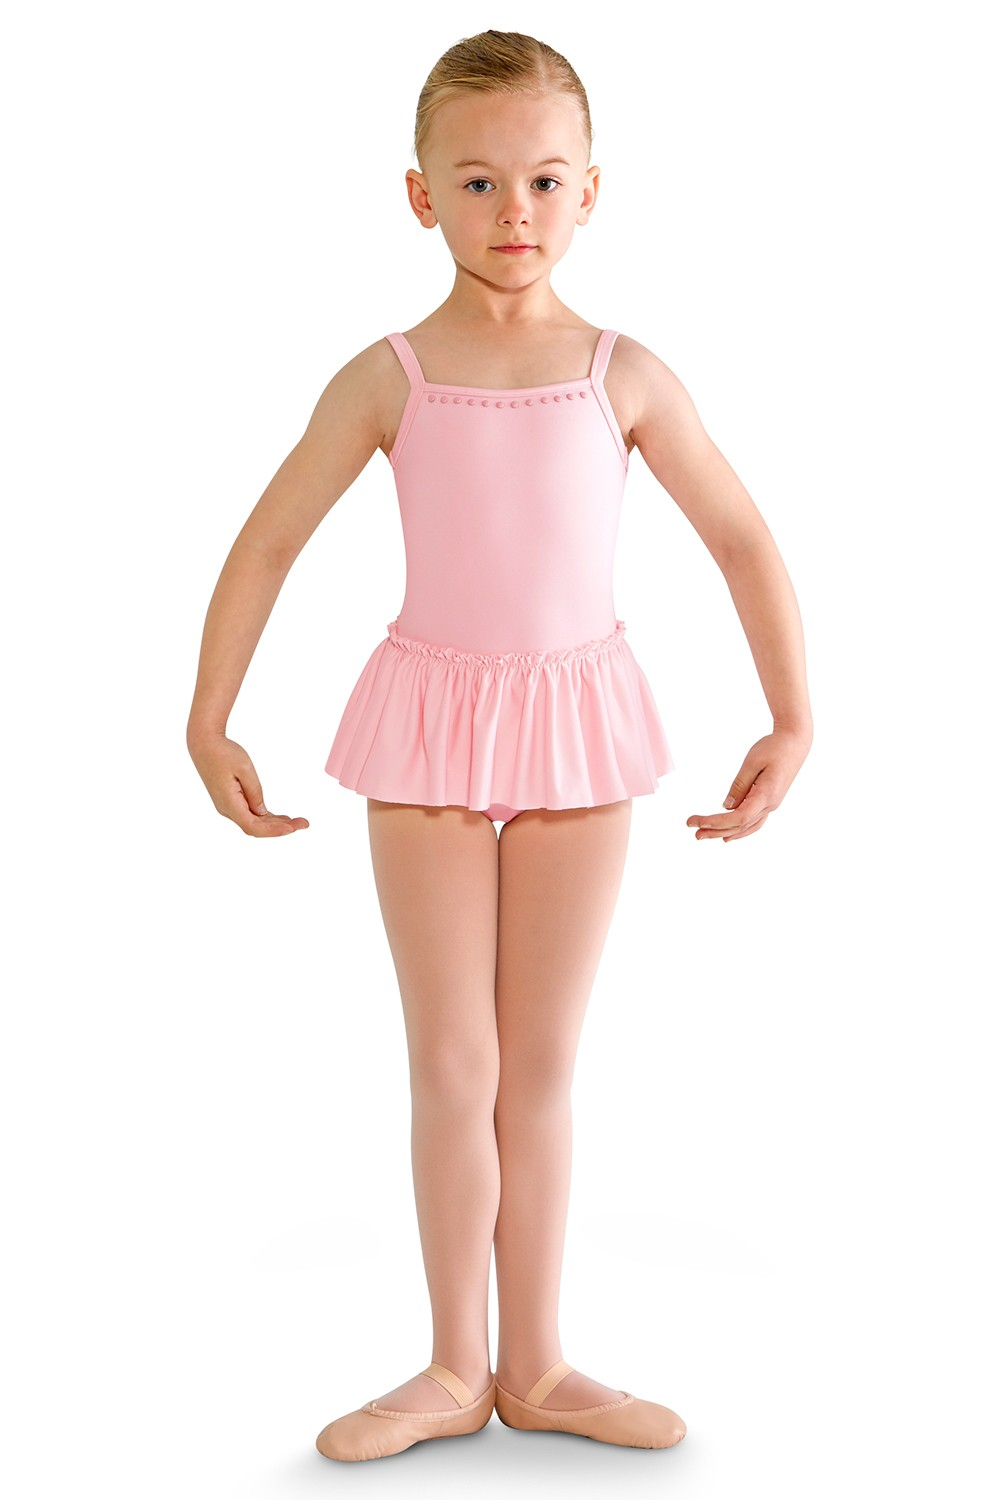 Pruie Girls Skirted Leotards